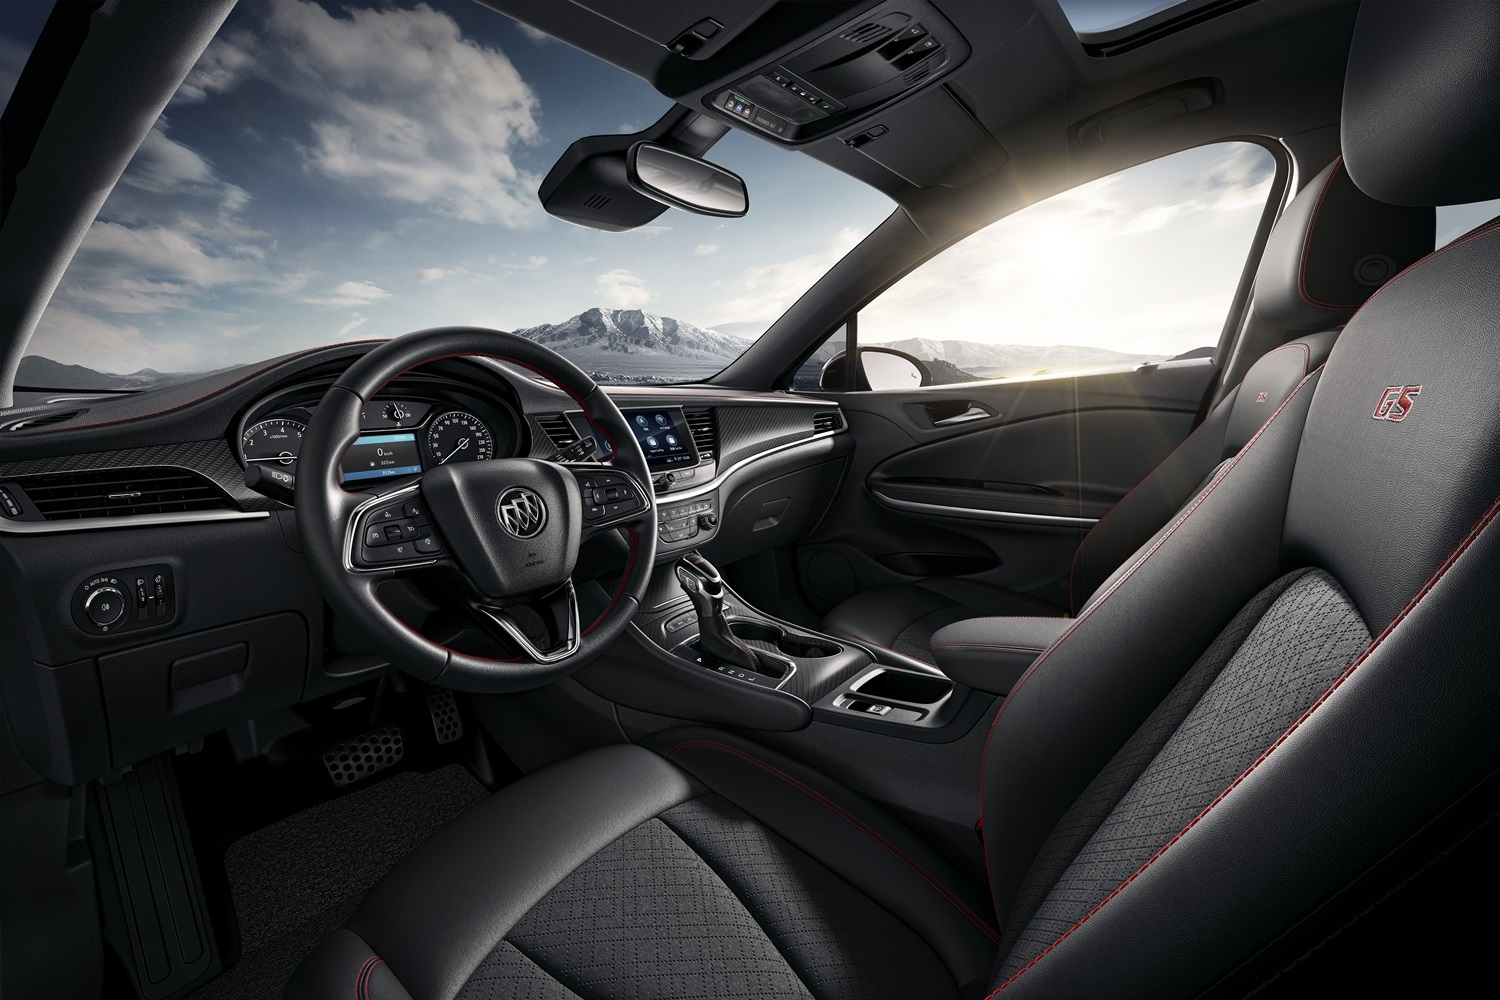 New 2021 Buick Verano Gs Launches In China | Gm Authority New 2021 Buick Riviera Value, Turbocharged, Exhaust